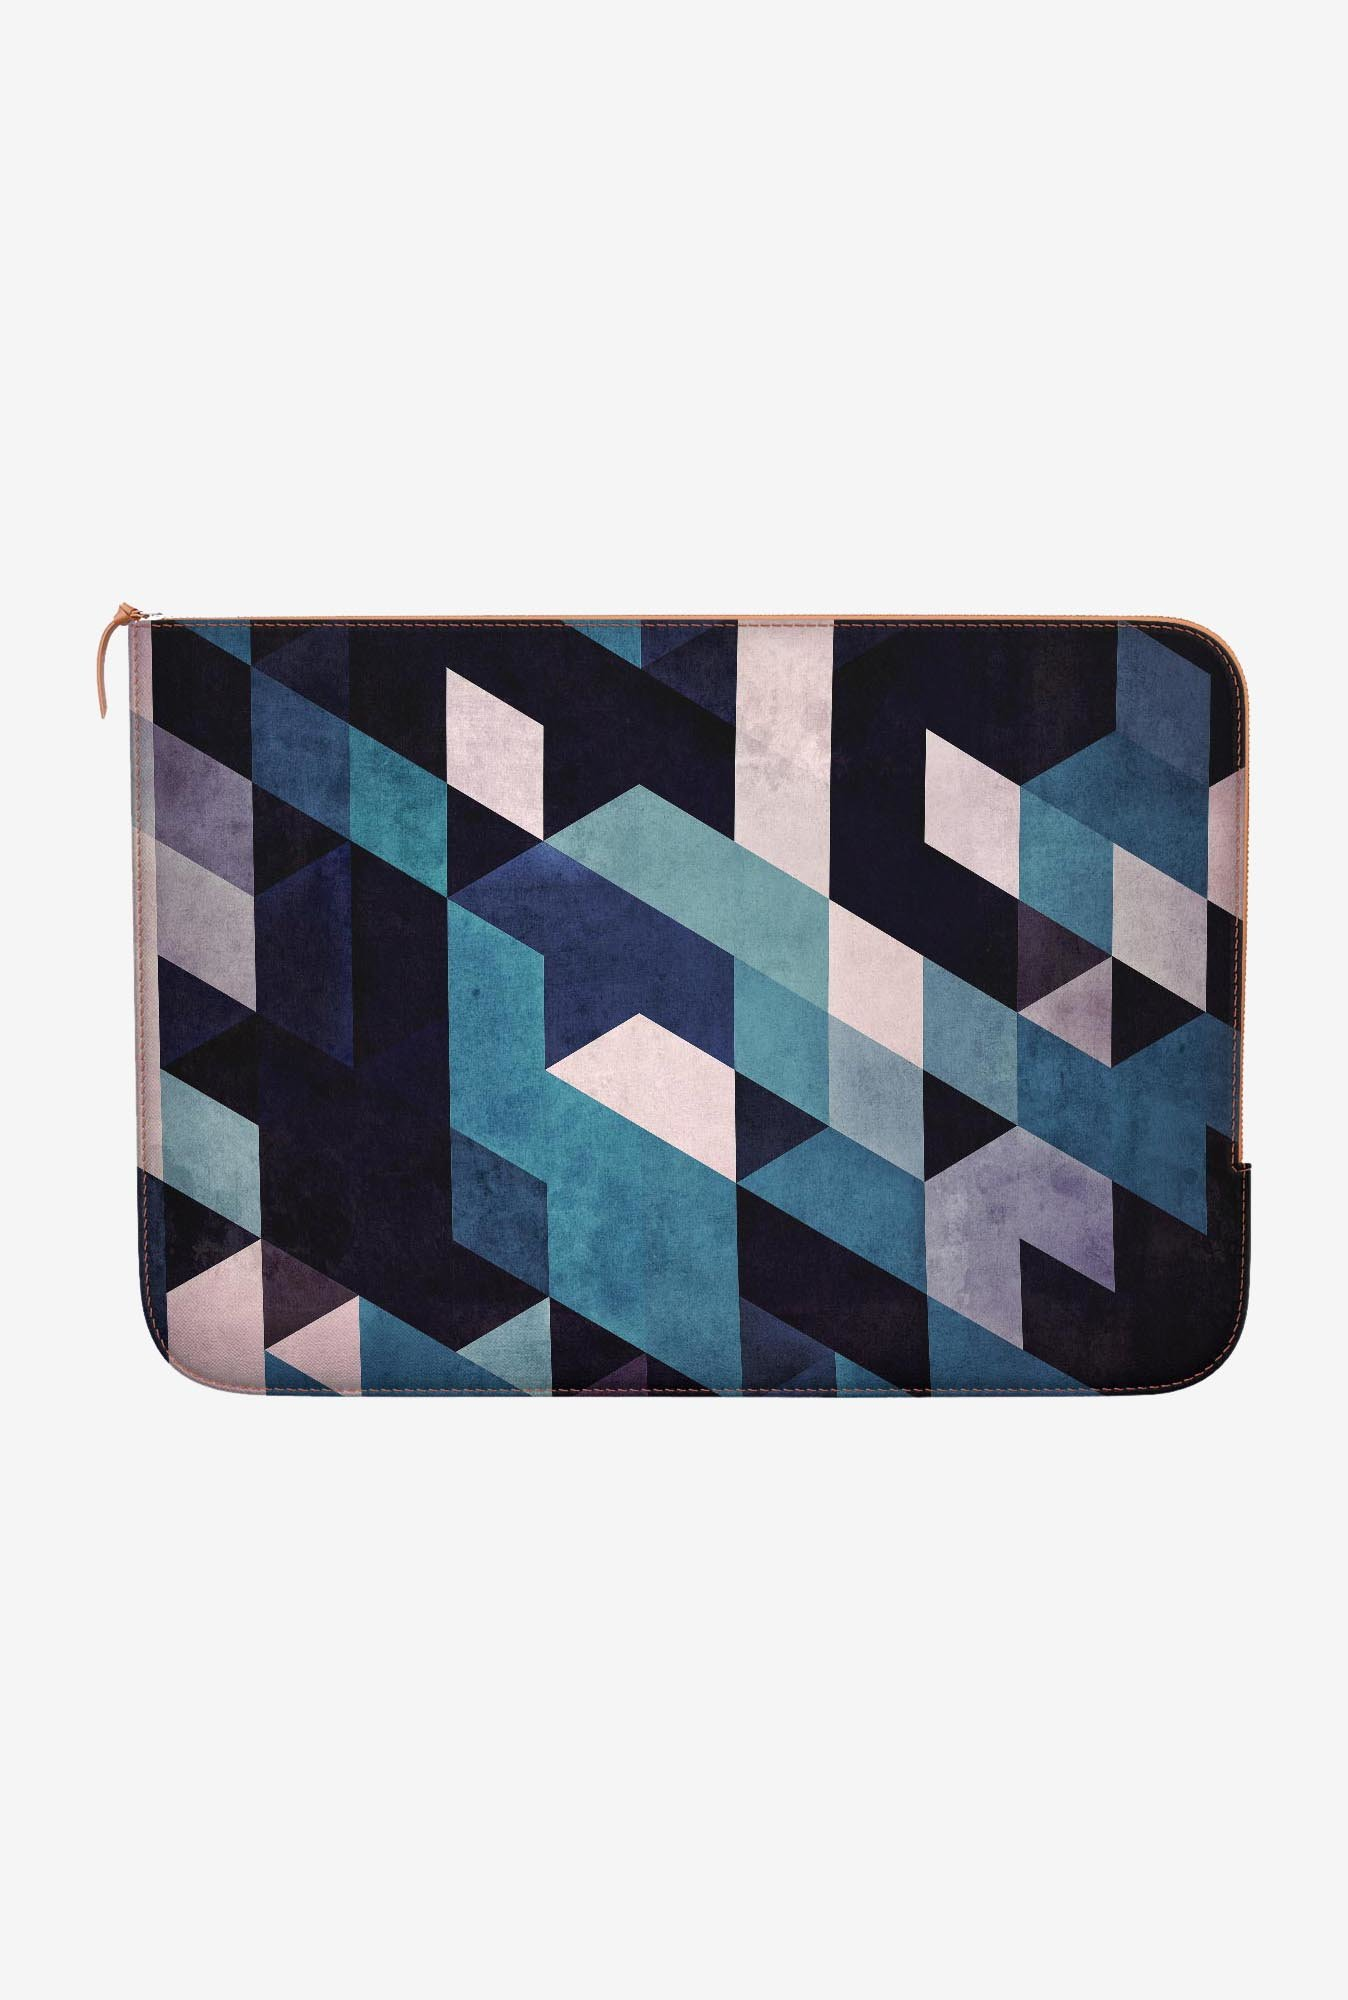 DailyObjects Blux Redux Hrxtl Macbook Air 13 Zippered Sleeve